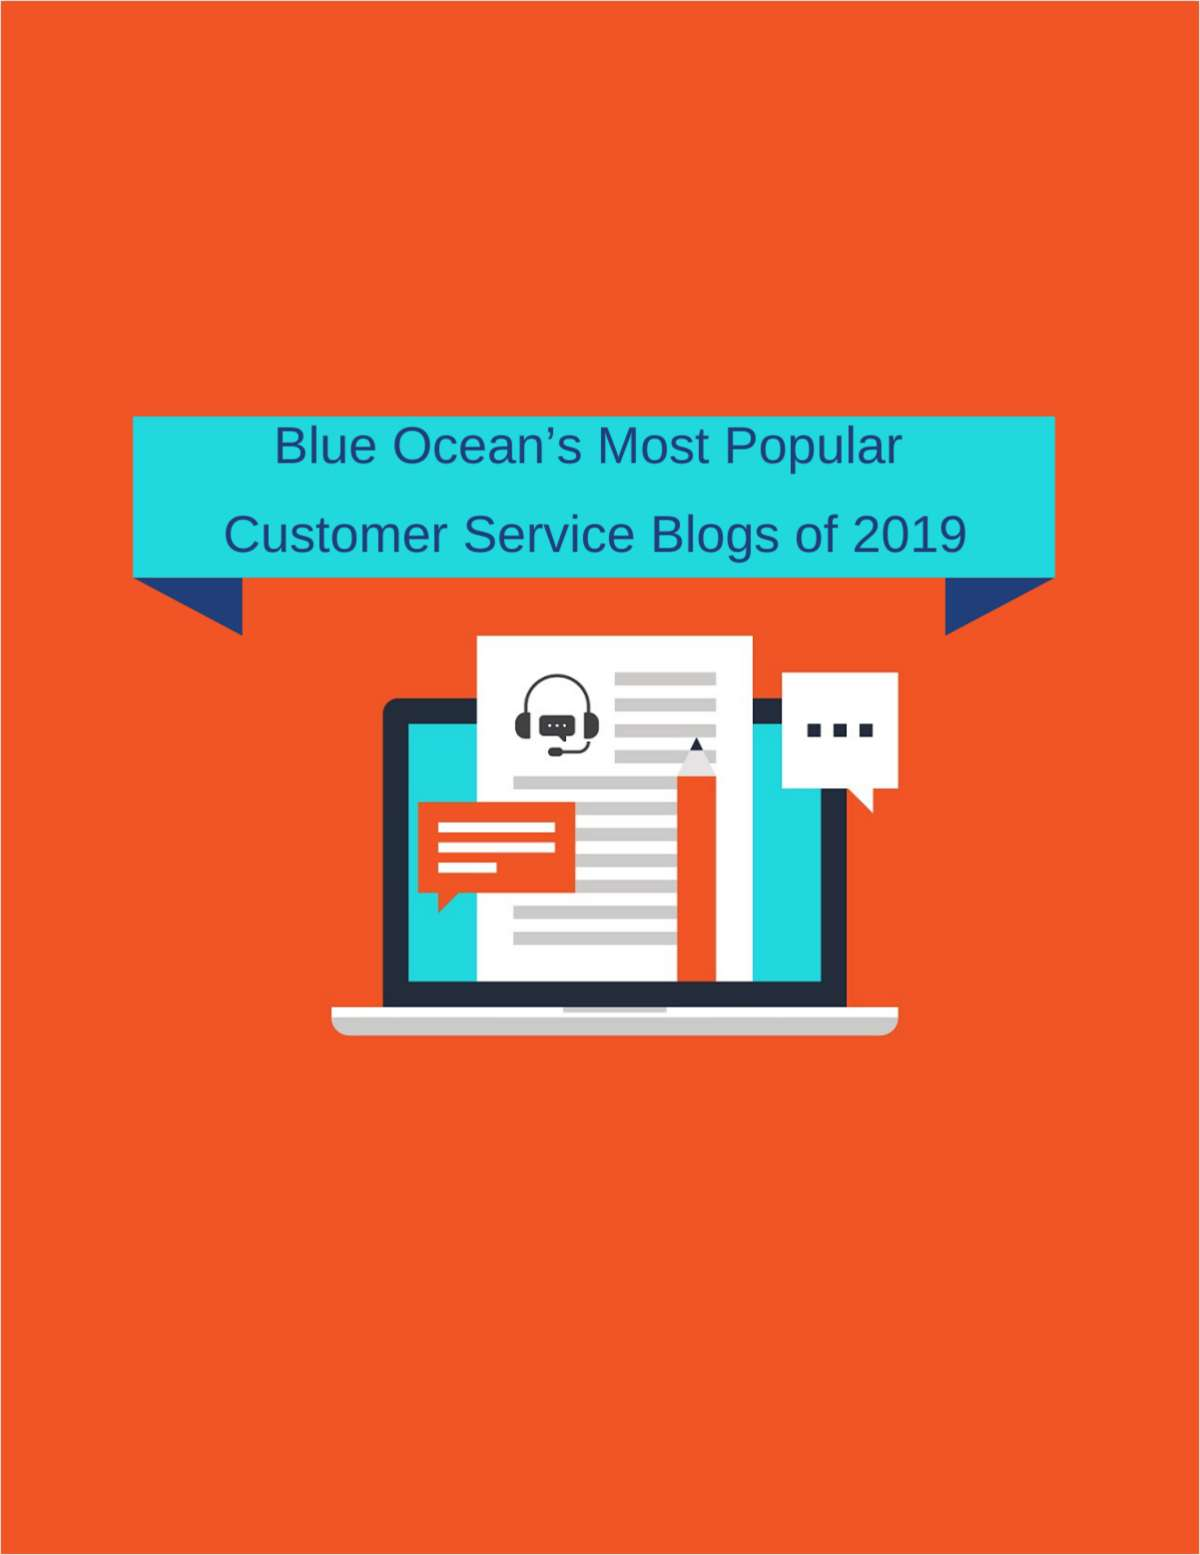 Blue Ocean's Most Popular Customer Service Blogs of 2019